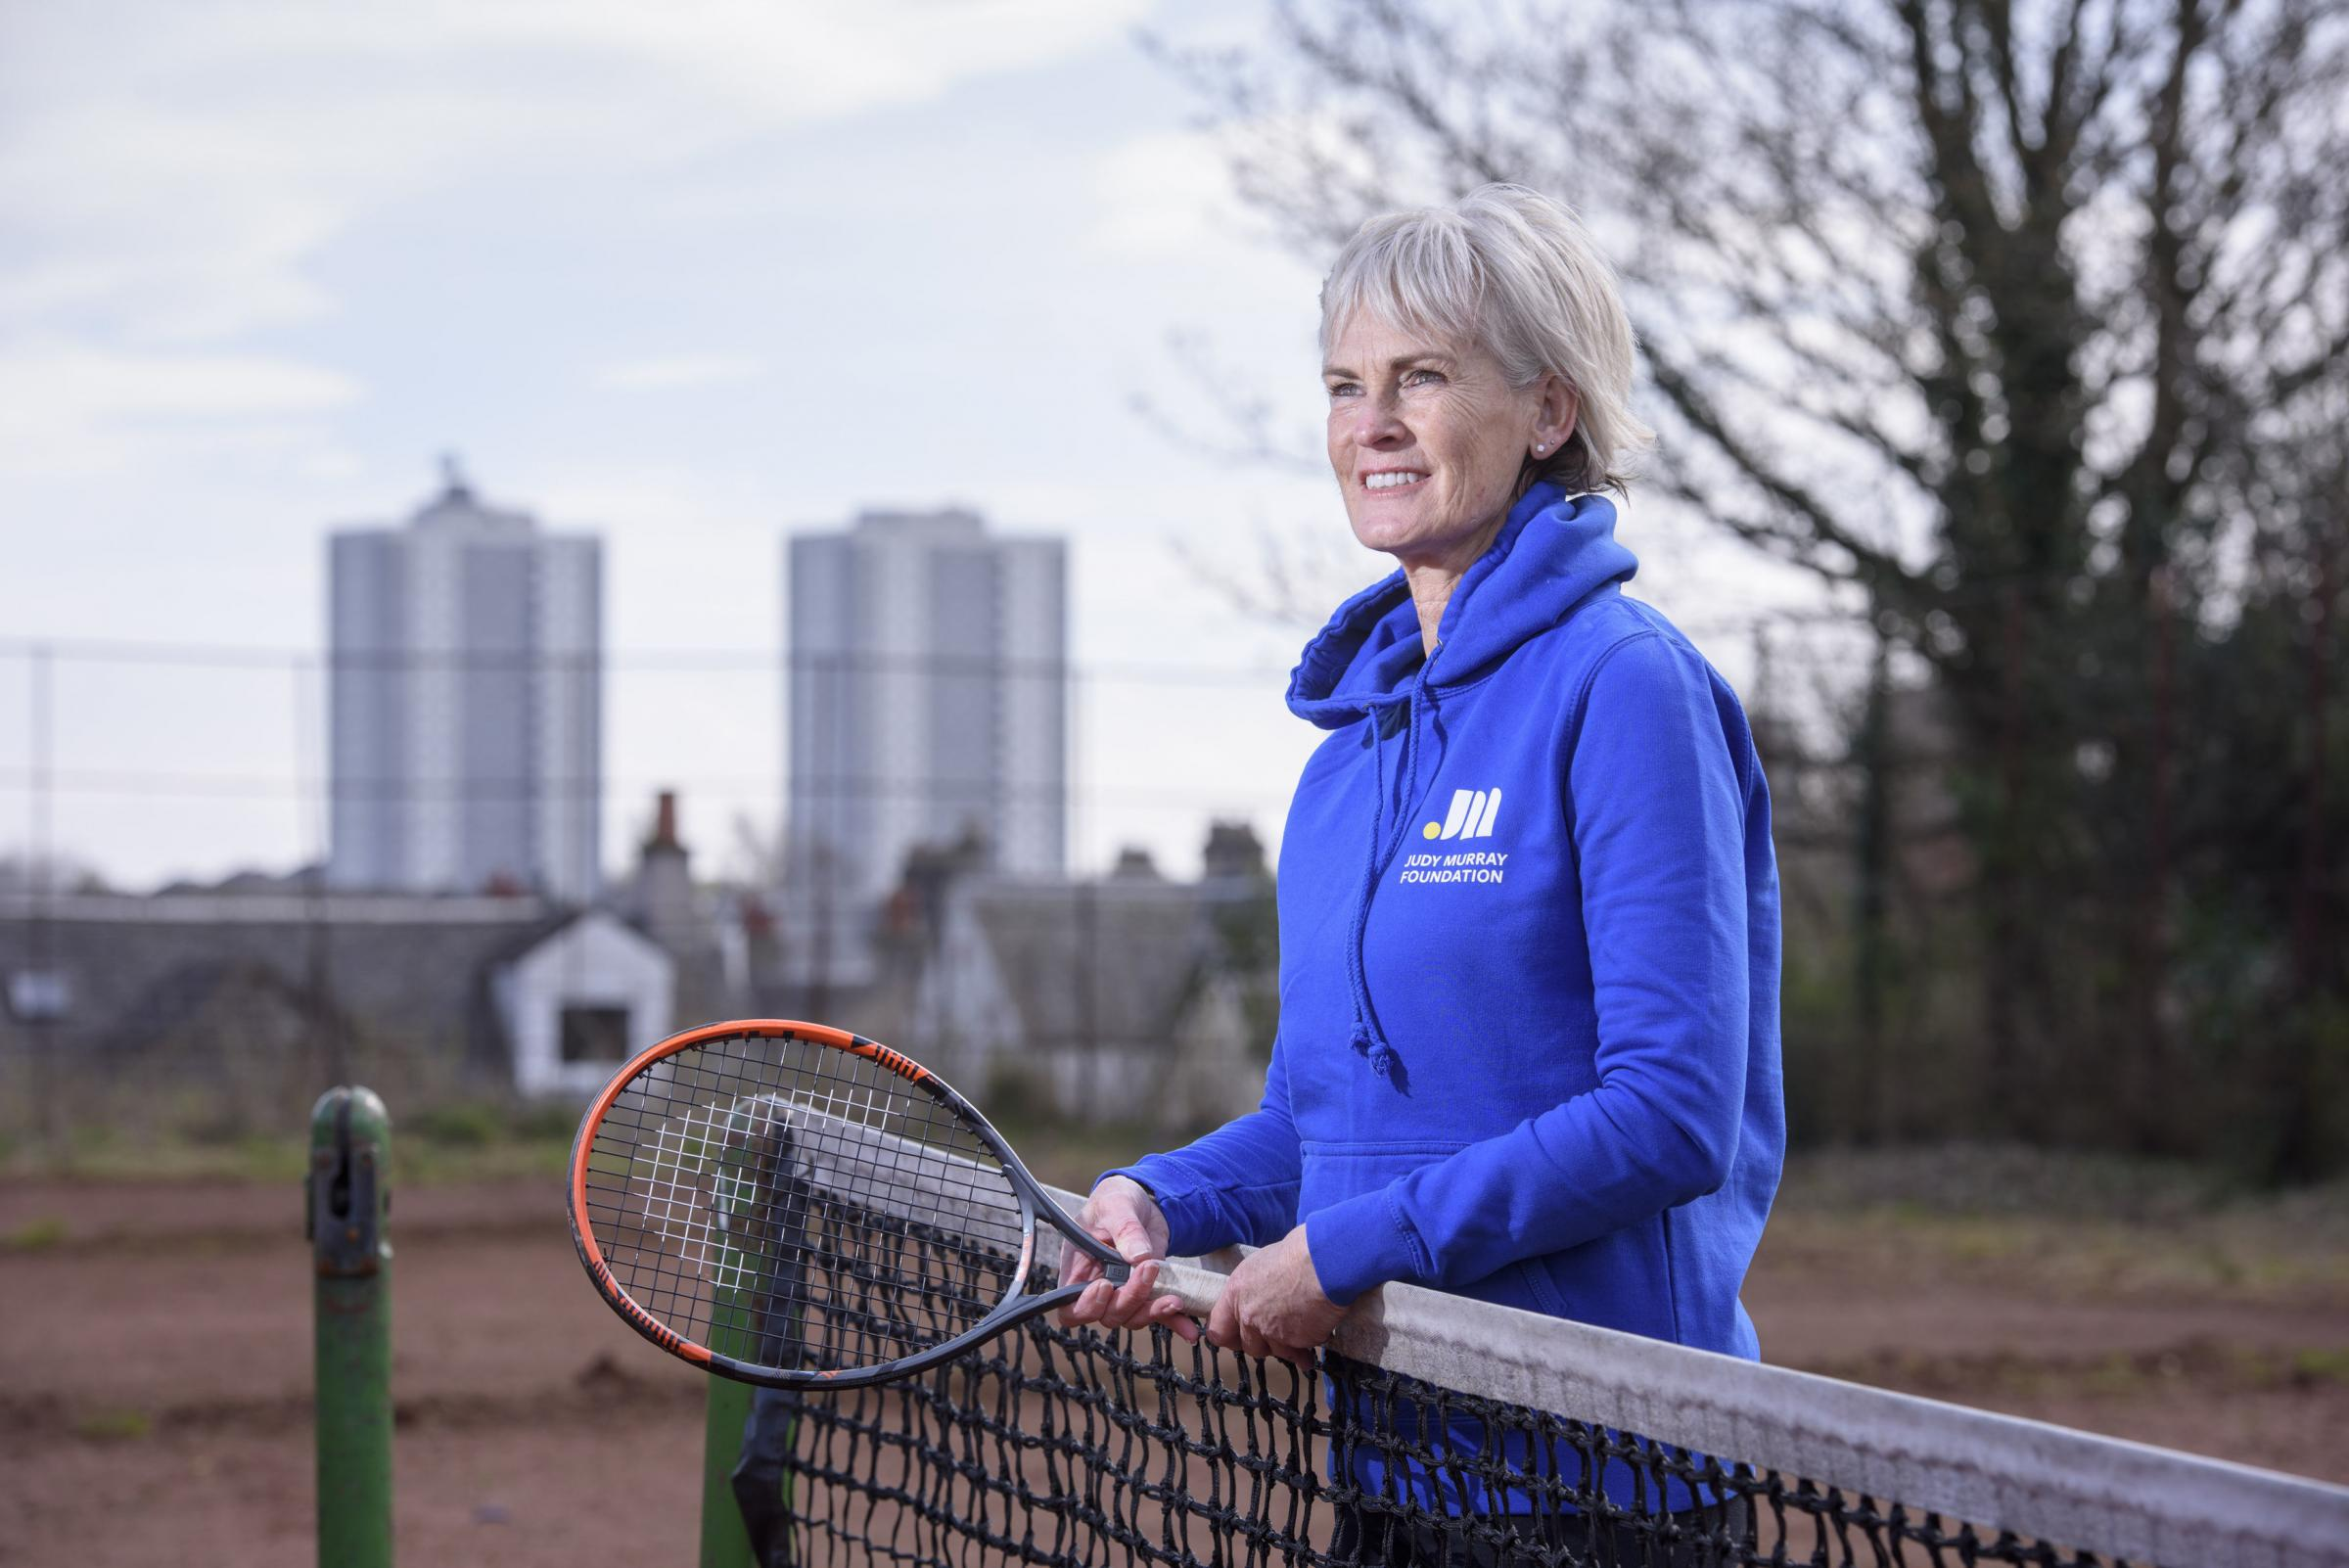 Judy Murray feared Andy Murray's career was over just 5 months ago